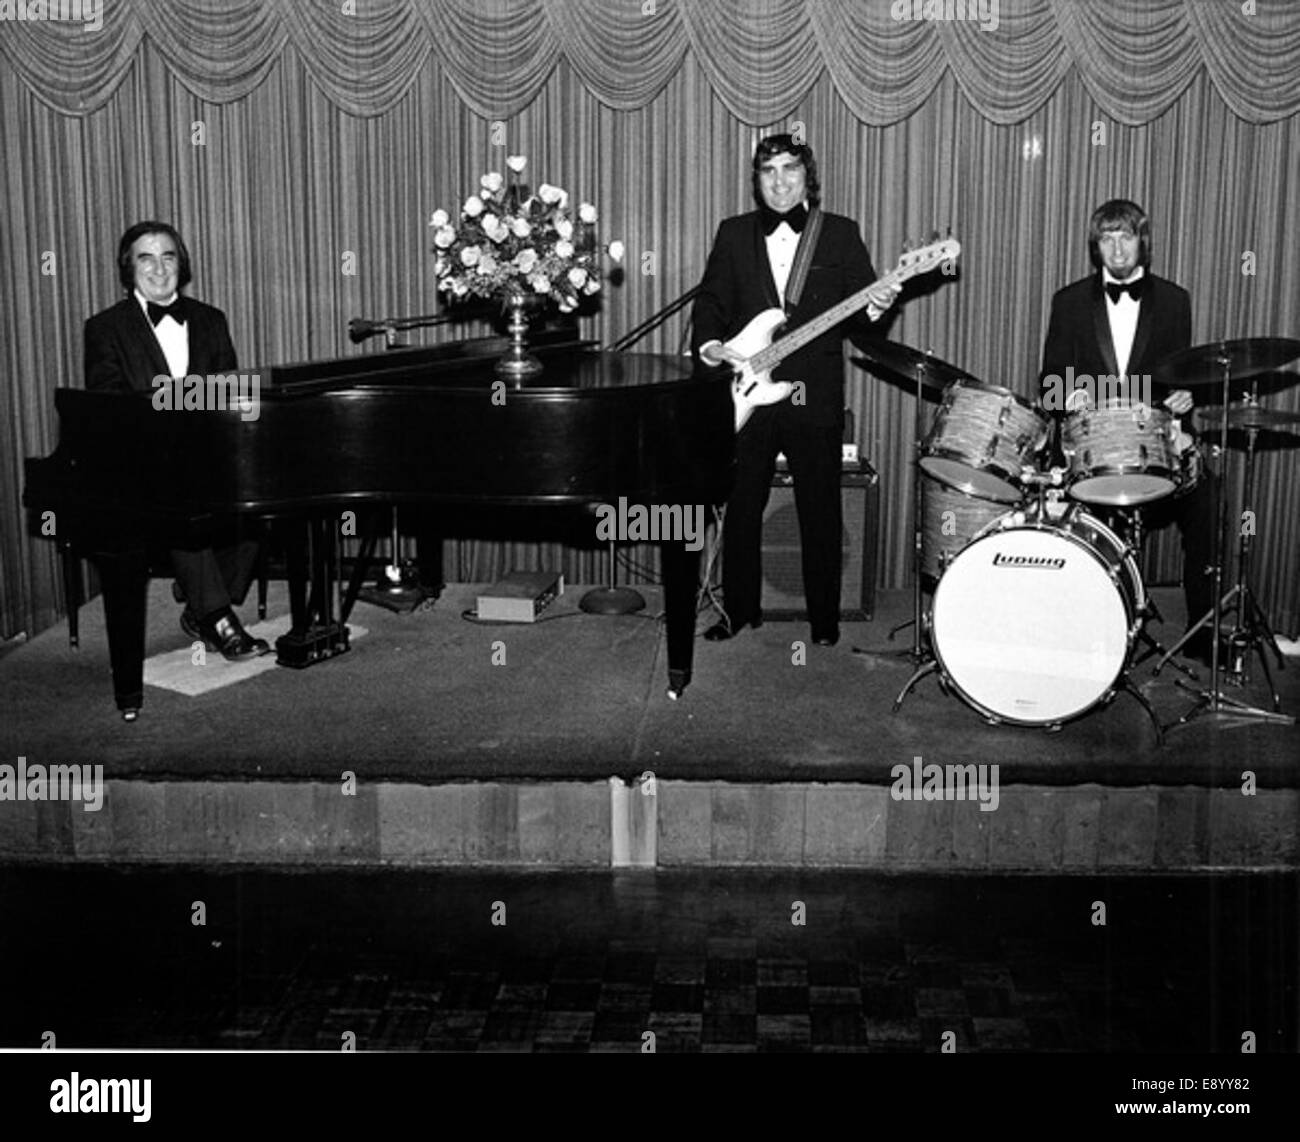 Band performing at the Lago Mar seaside resort - Fort 15312378588 o - Stock Image